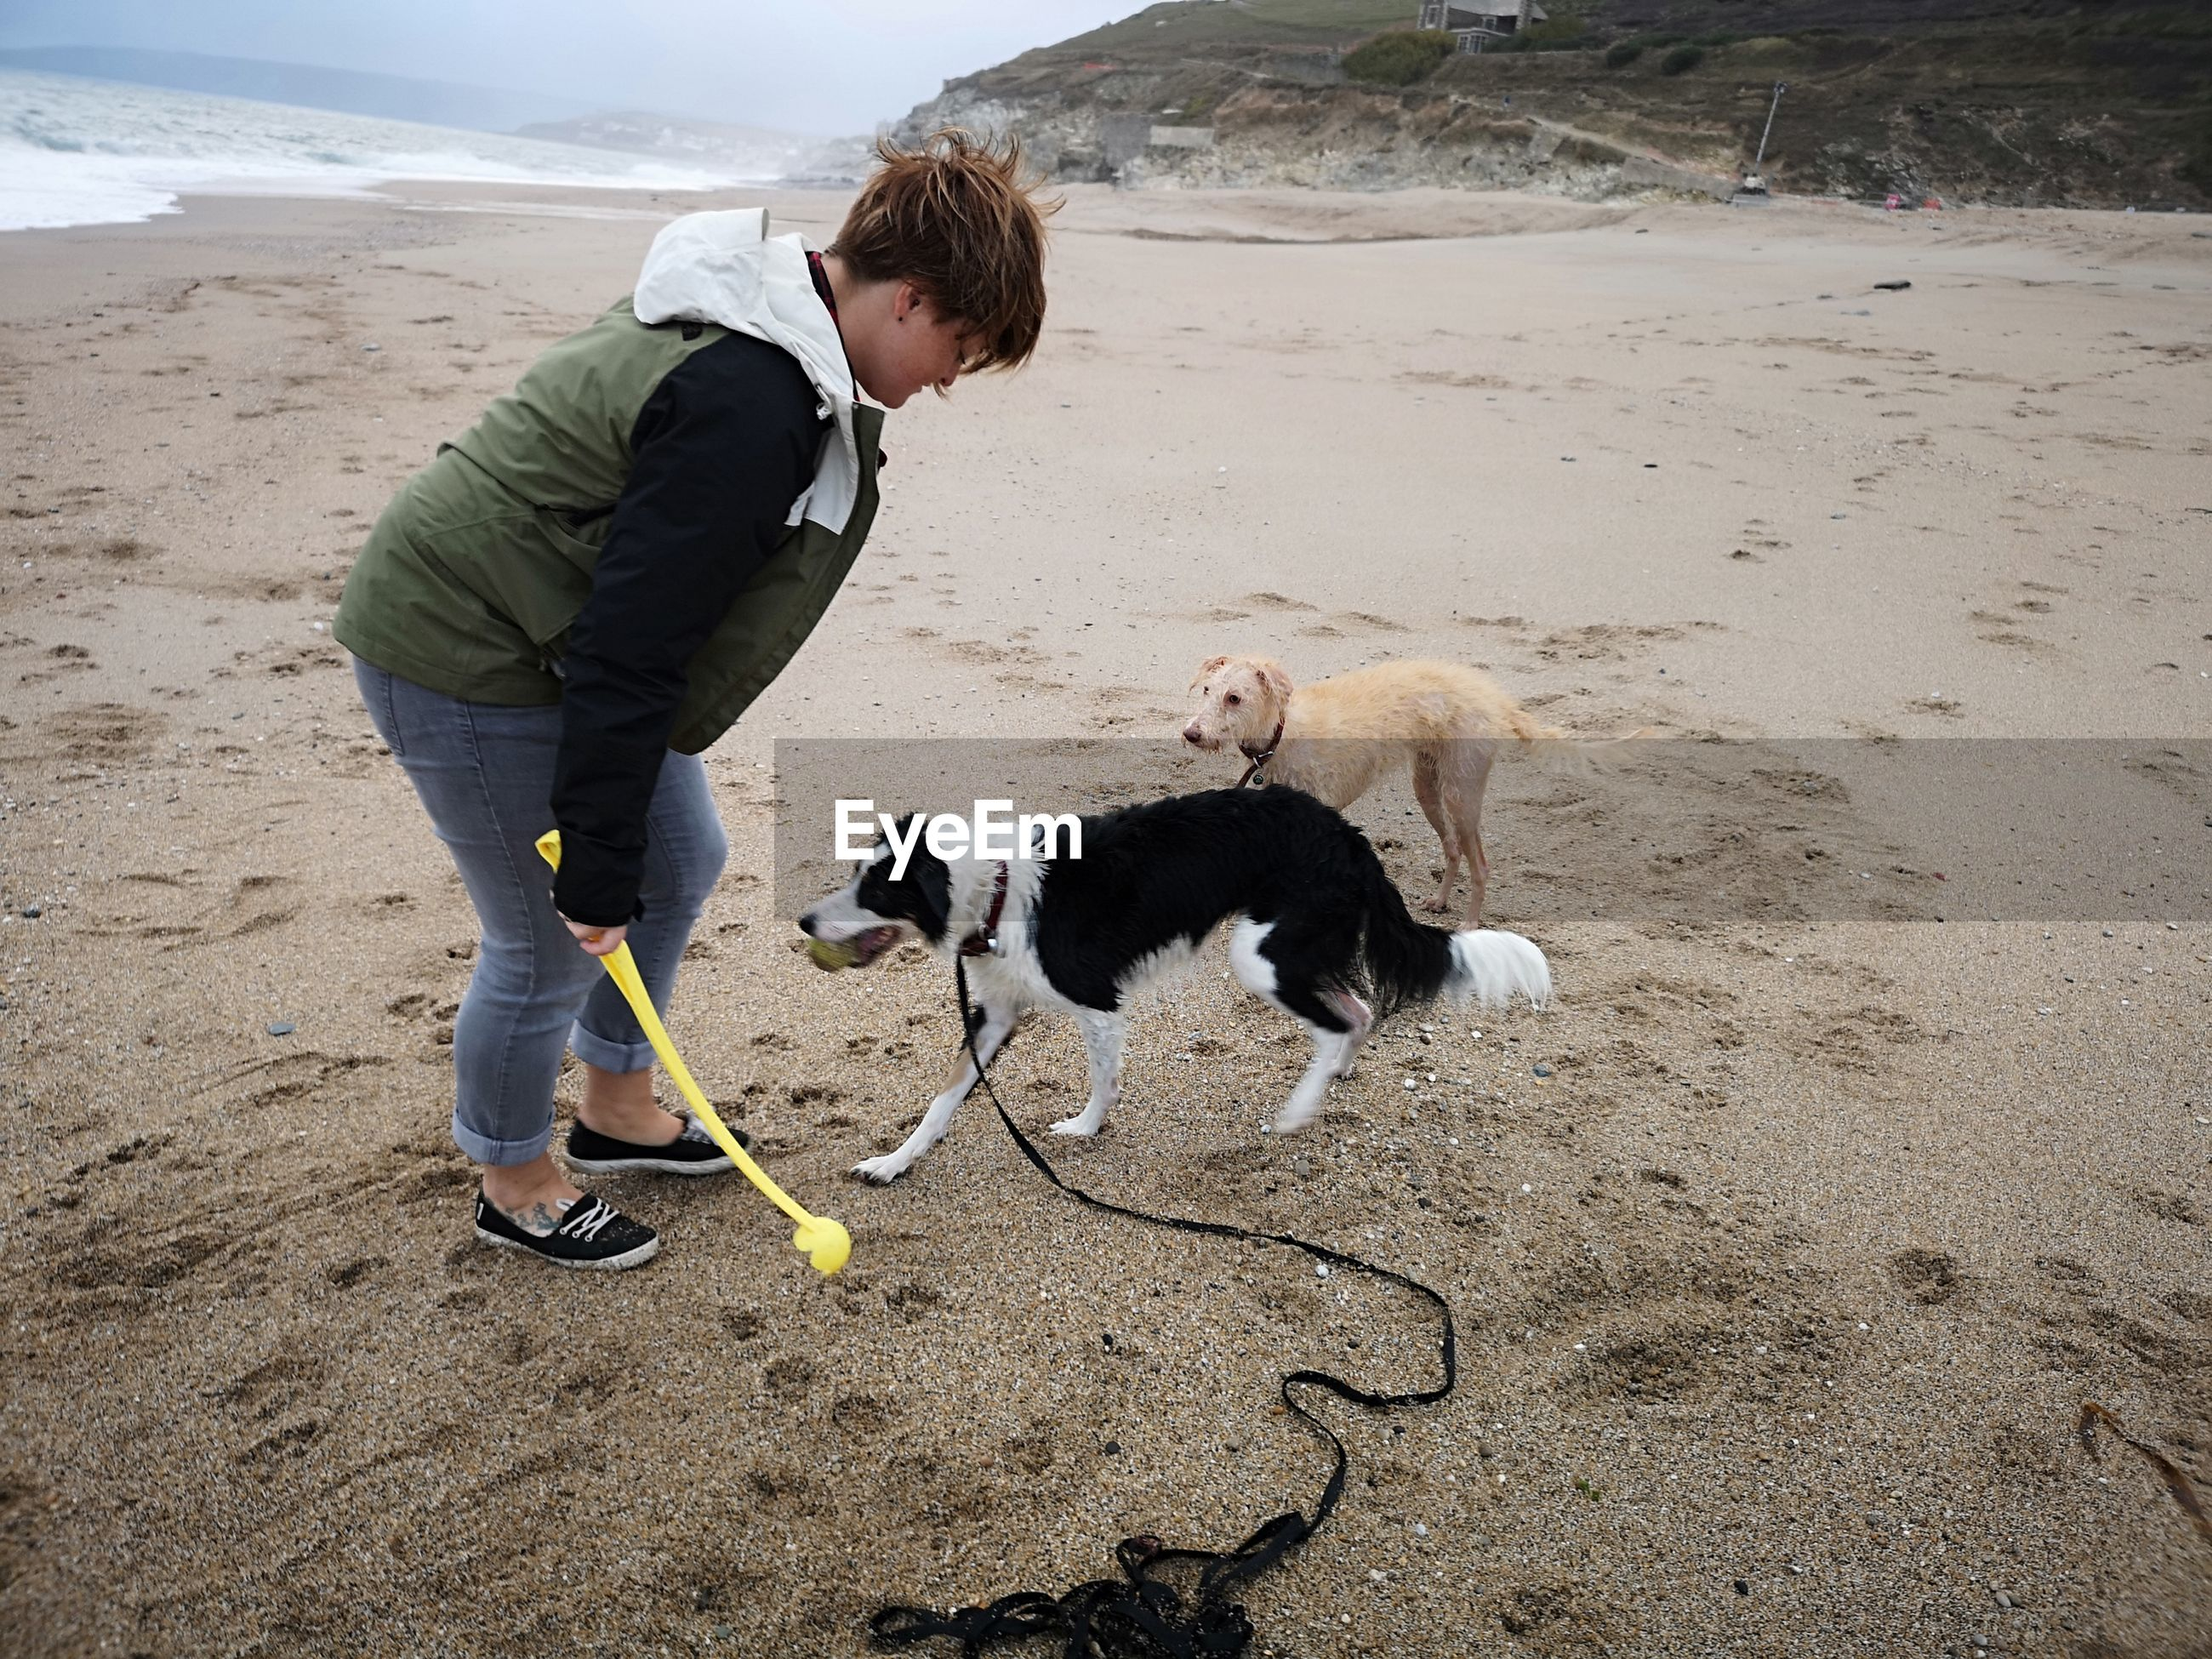 Woman playing dogs at beach